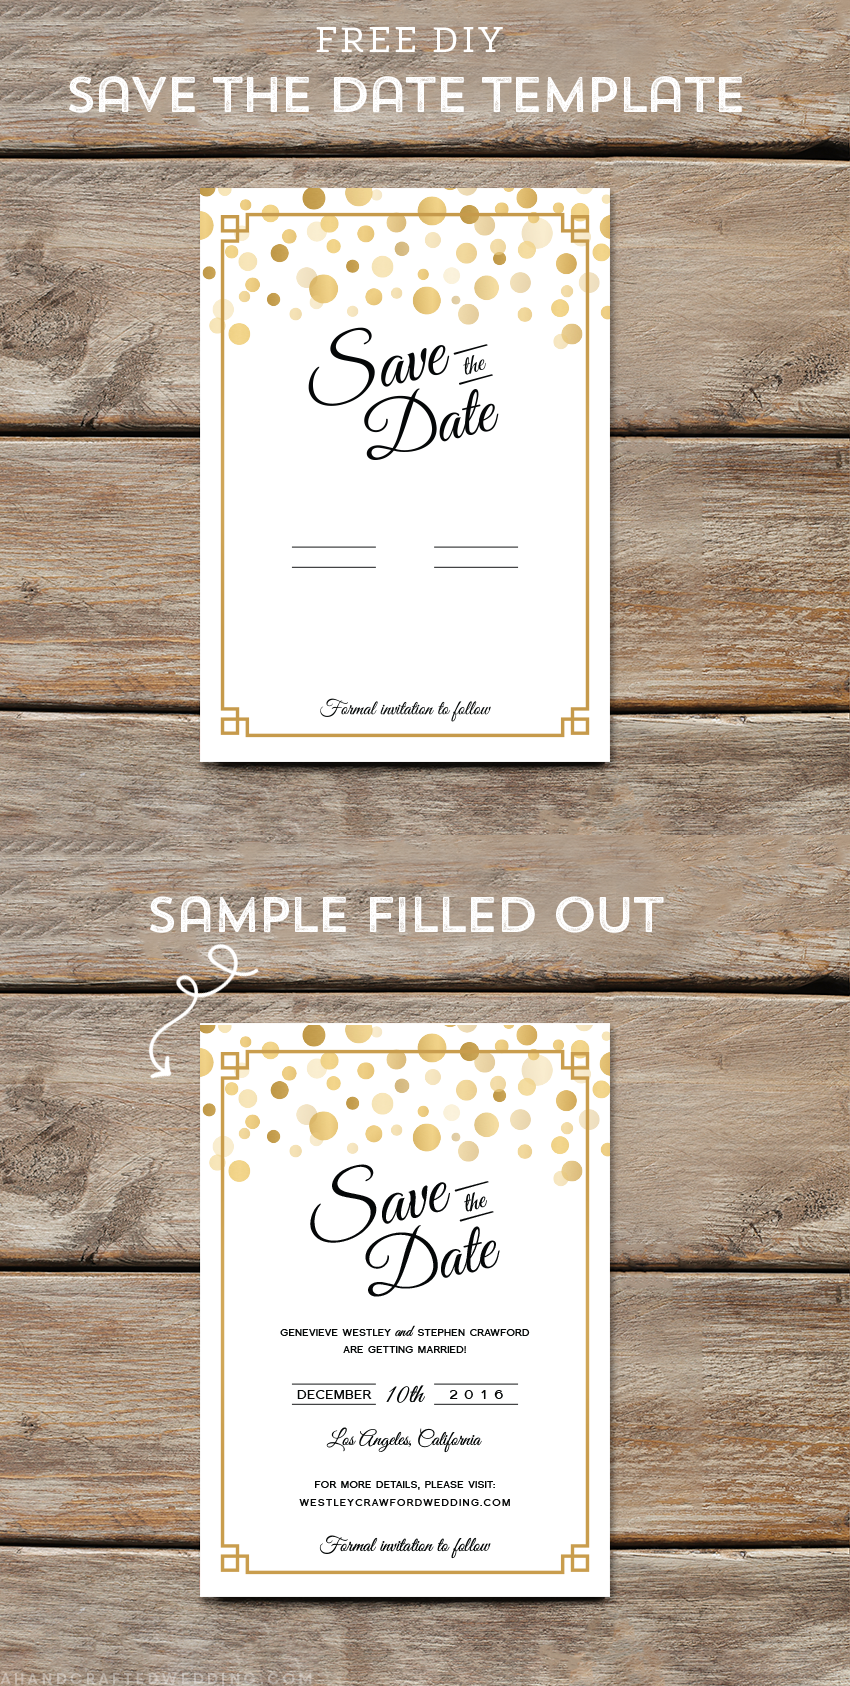 FREE Modern DIY Save the Date Template Diy save the